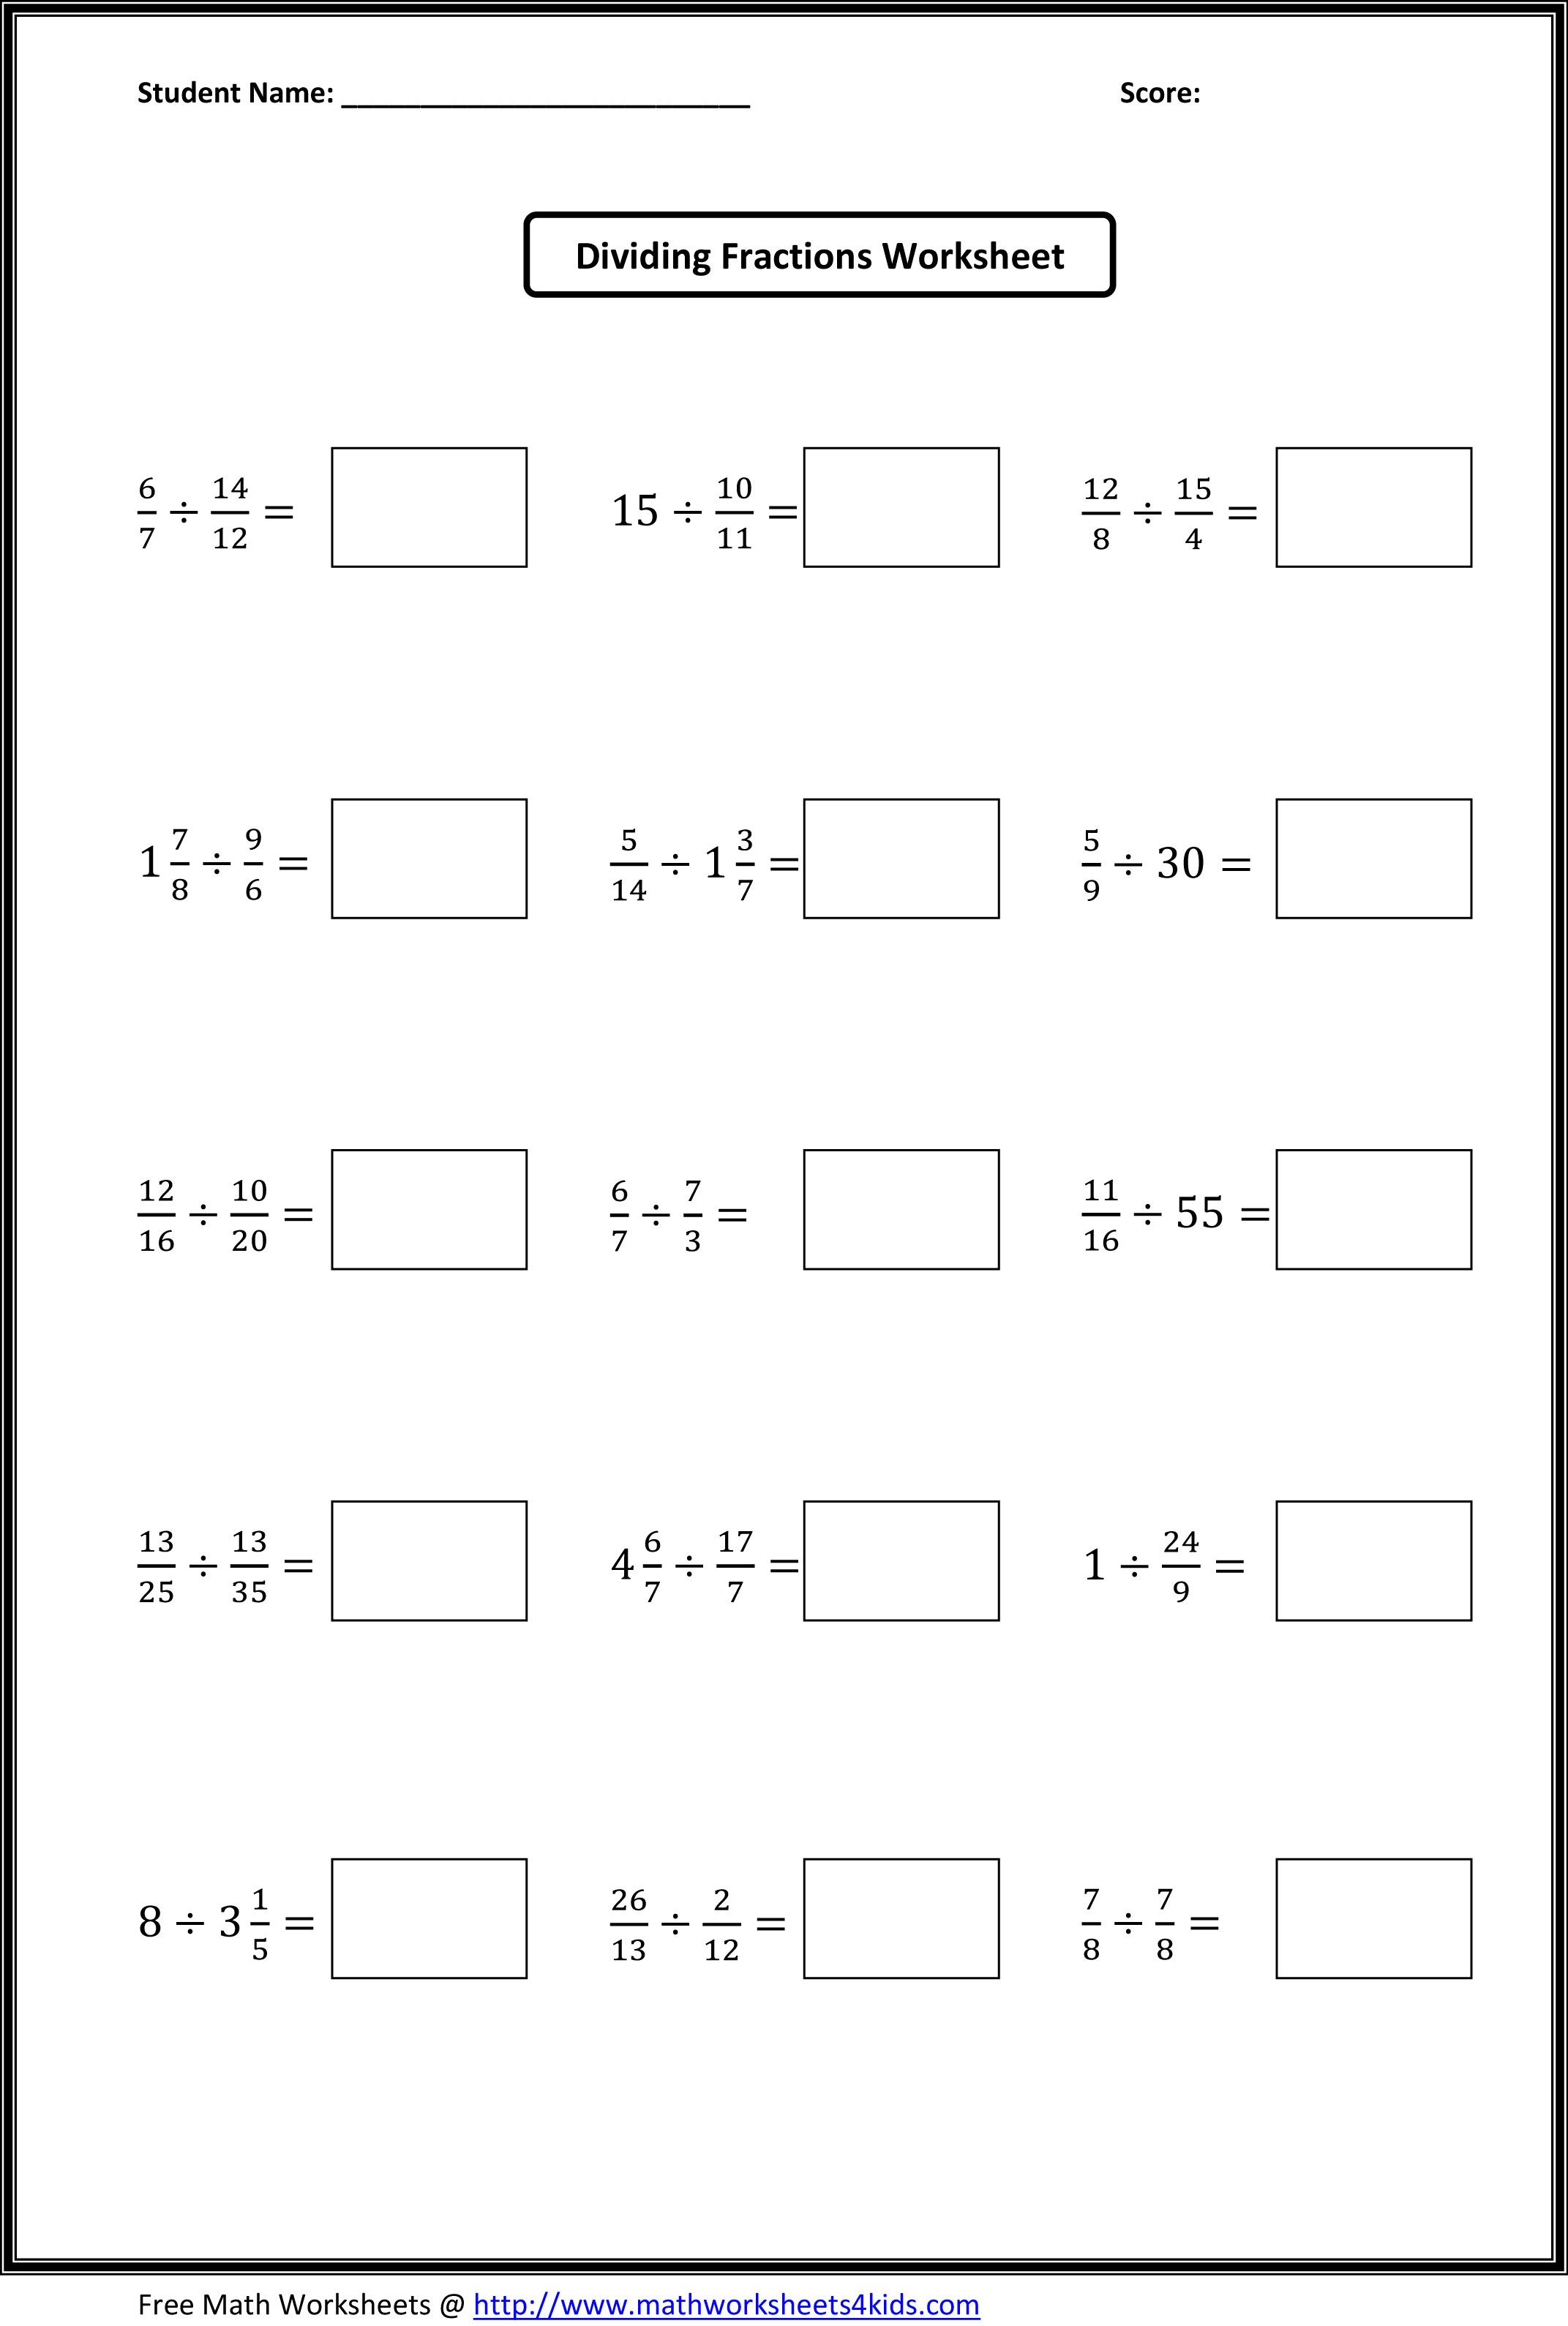 Worksheets Adding Subtracting Multiplying And Dividing Fractions Worksheet dividing fractions worksheets whats new pinterest worksheets